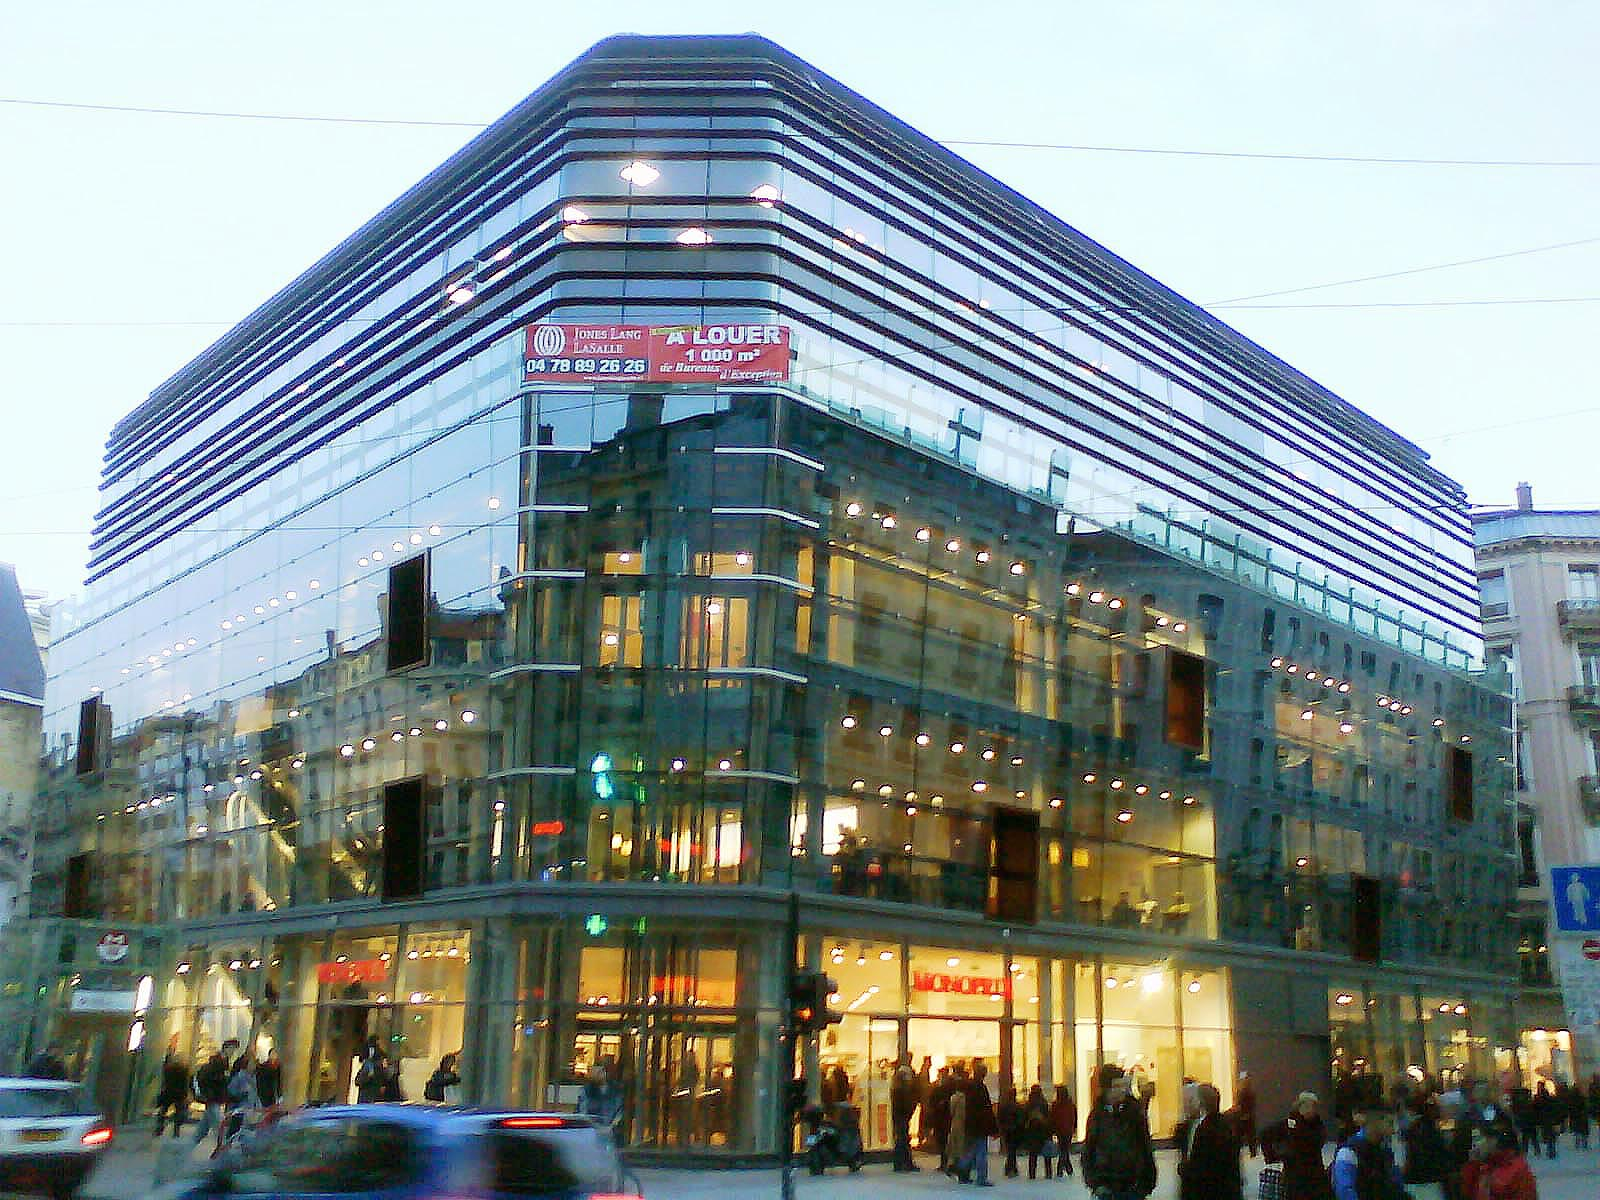 Magasin Metro Lyon Monoprix One Of The Biggest Supermarket In France Want To